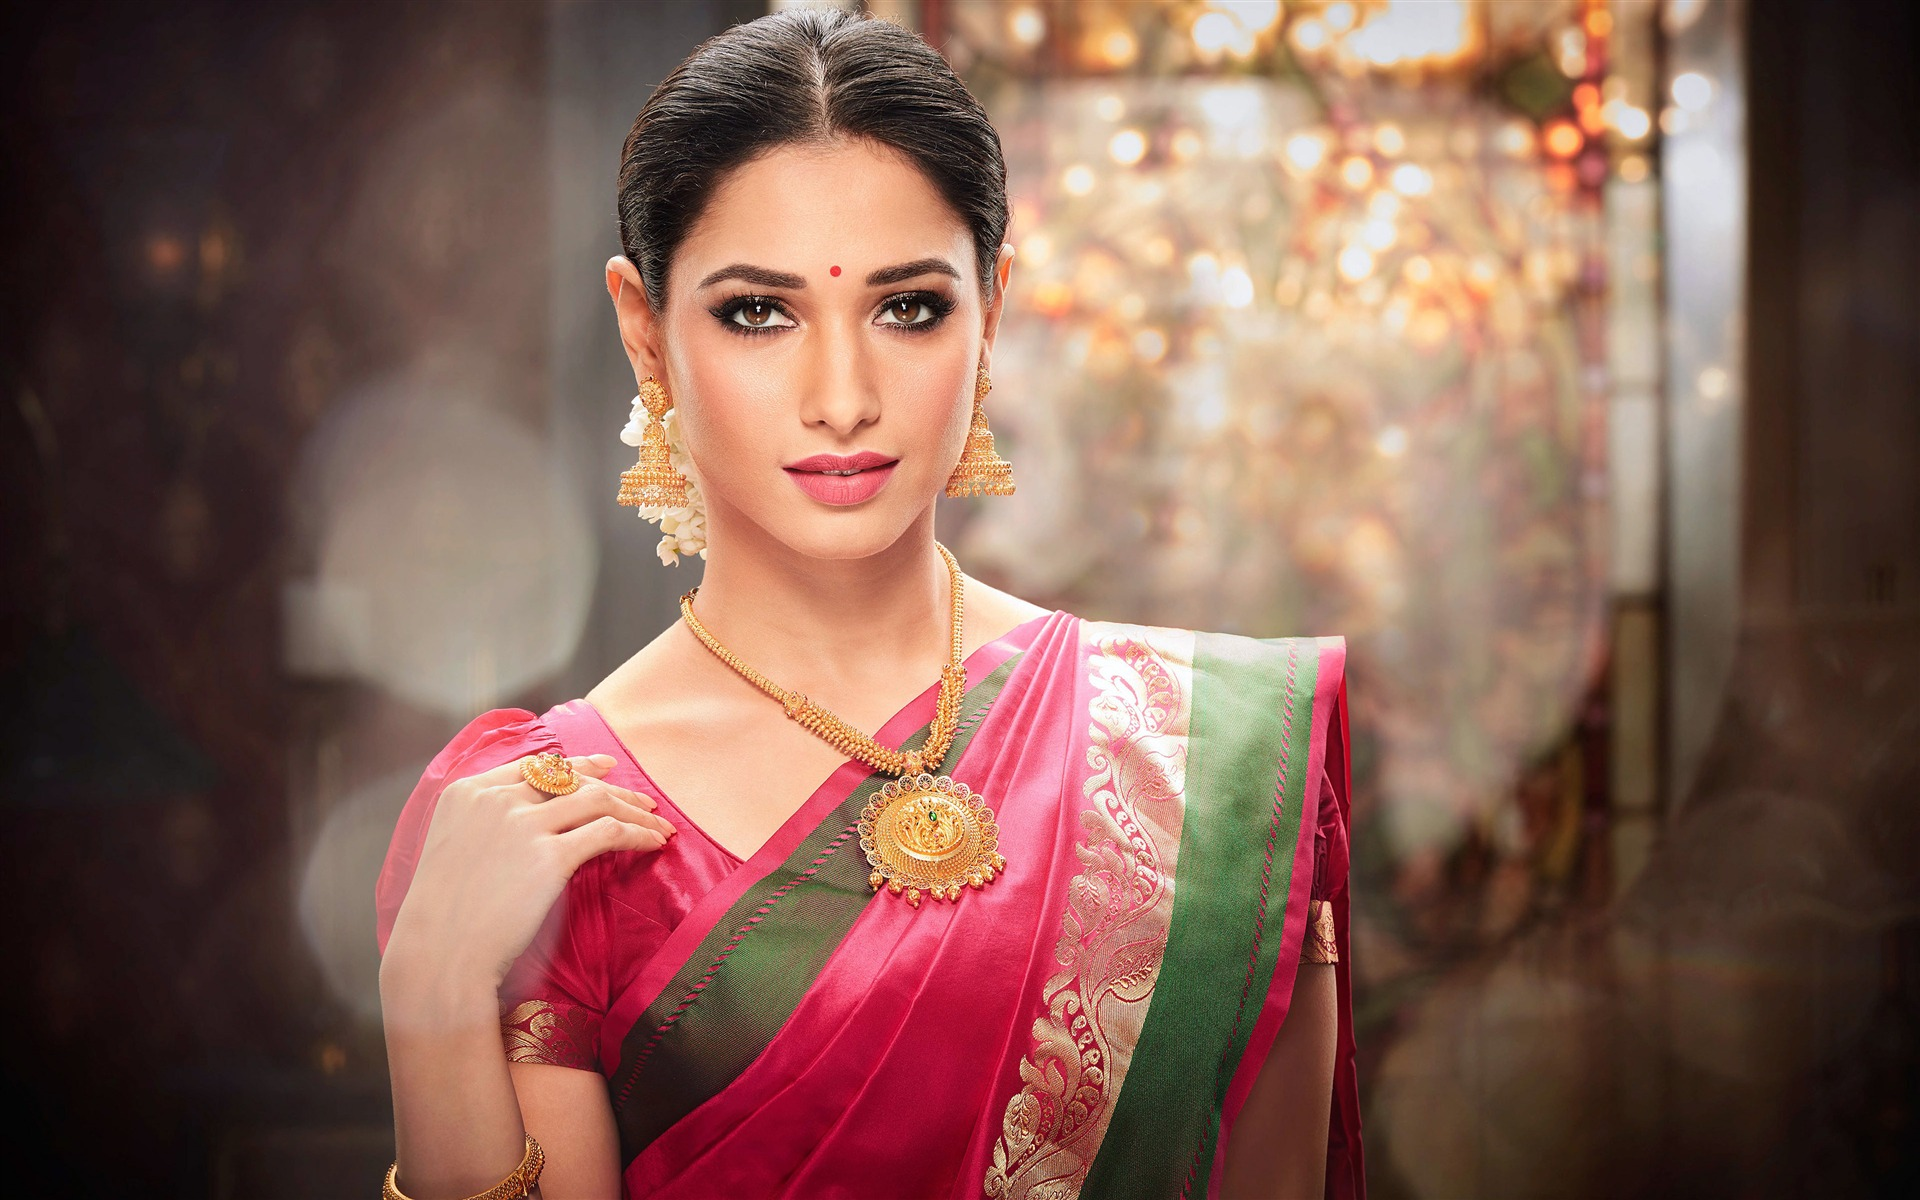 Beautiful Tamanna Pink Saree Makeup Photo Wallpaper HD